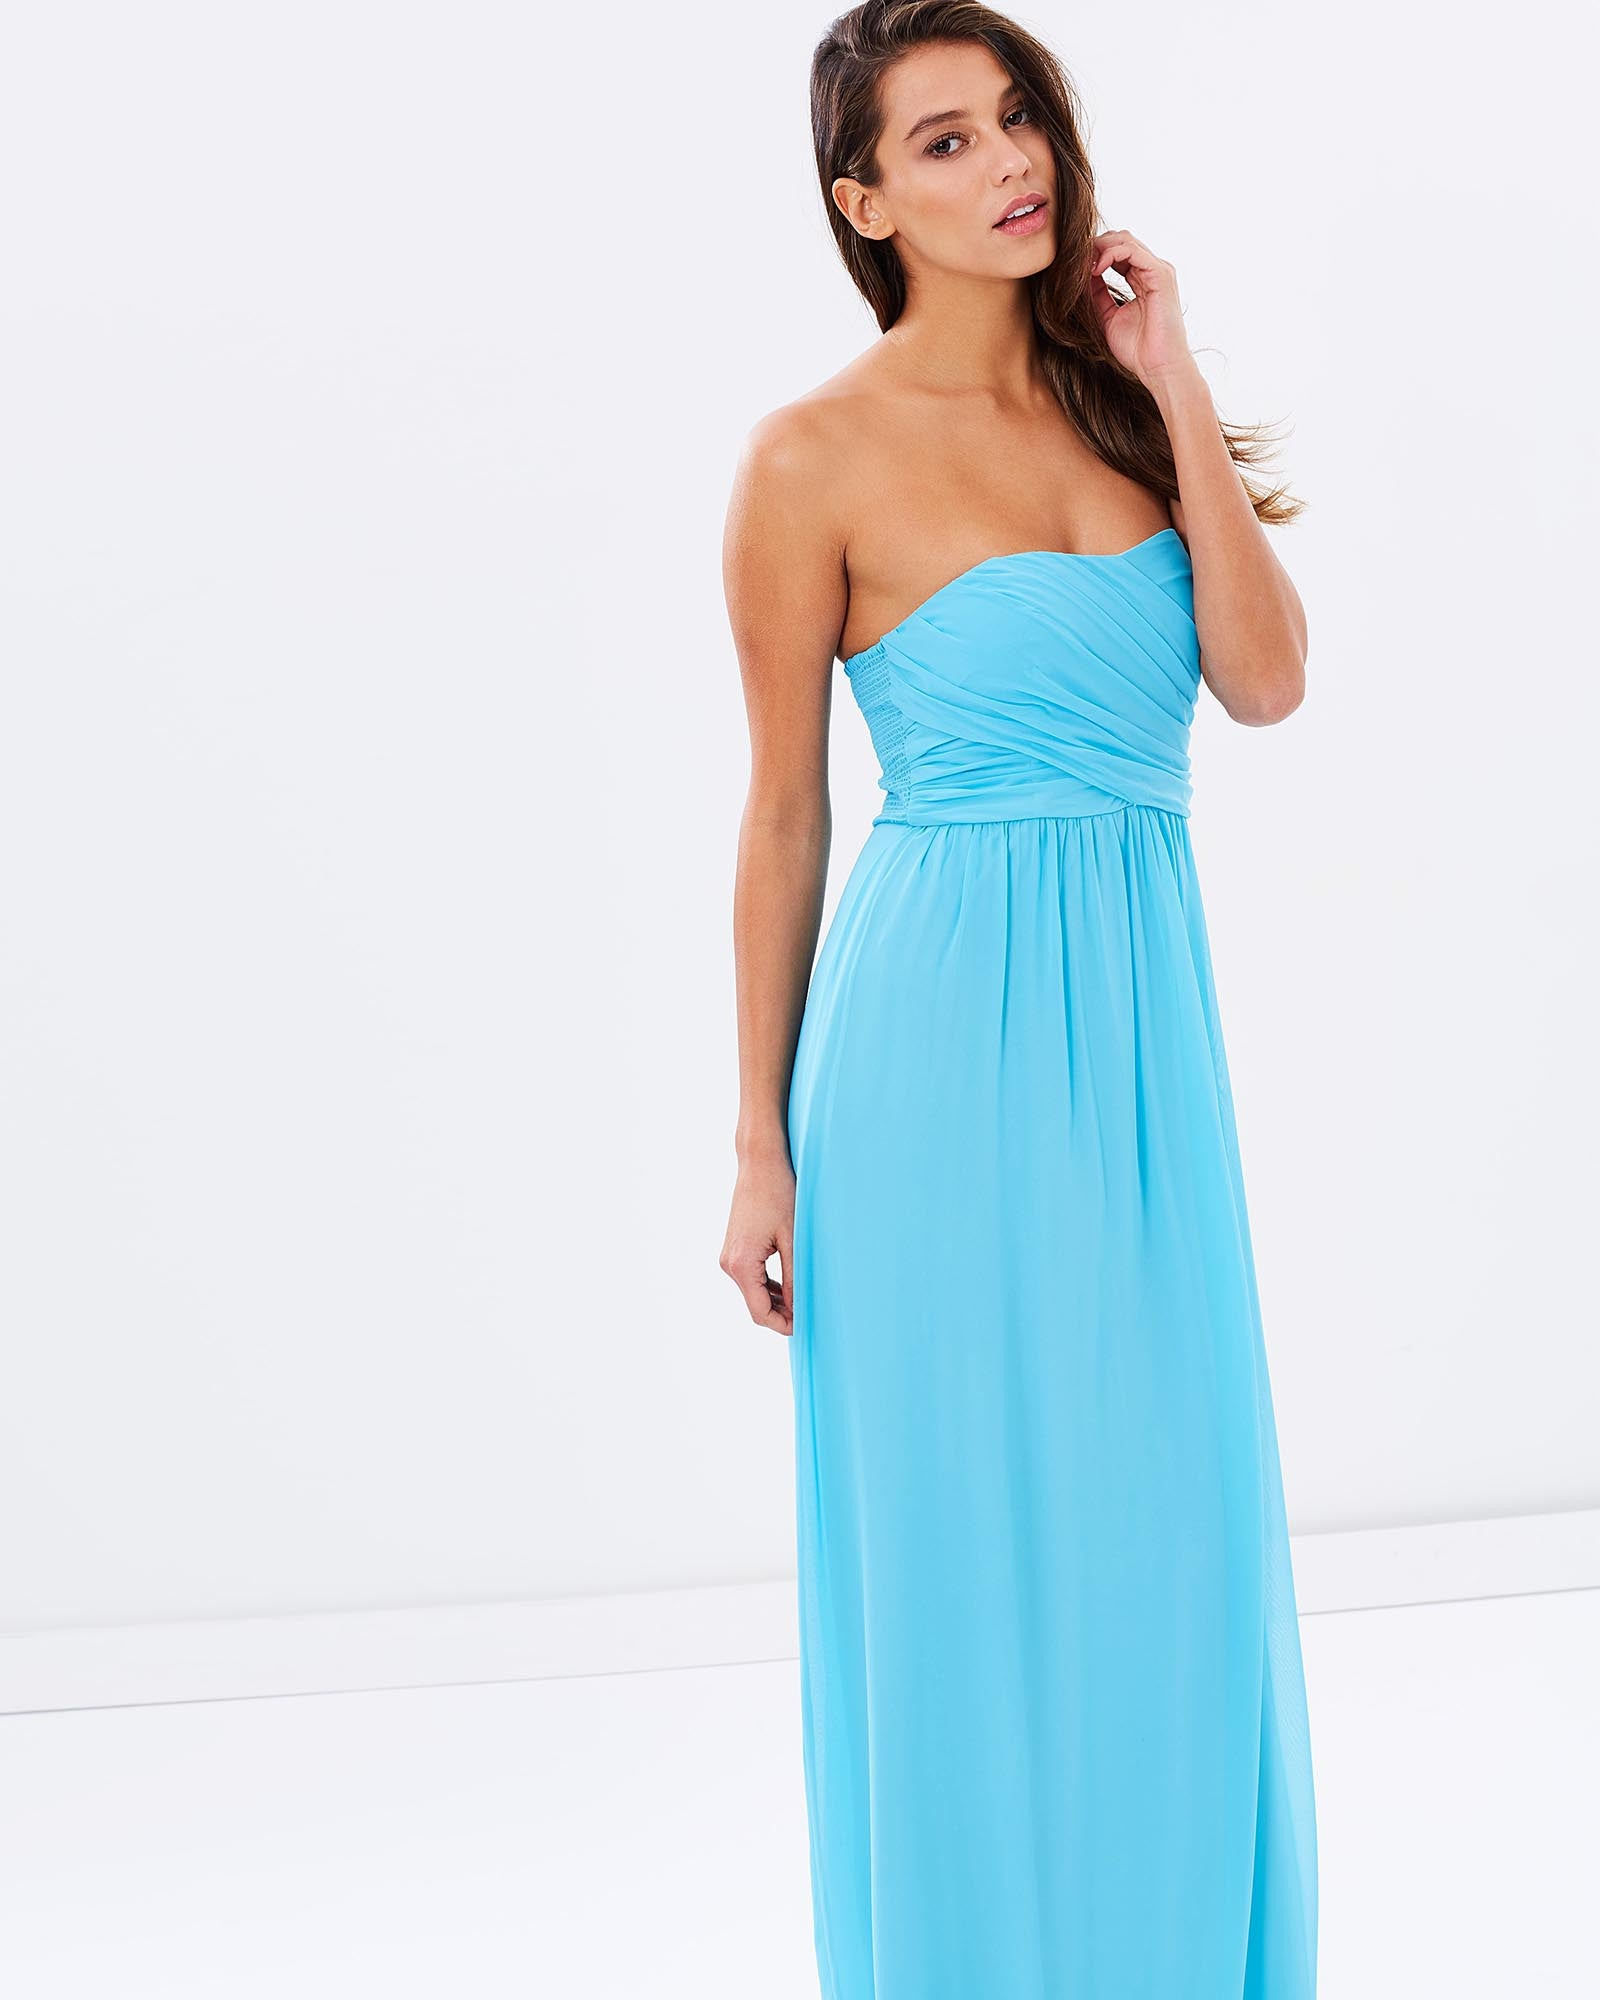 Strapless Chiffon Evening Dress - Light Blue